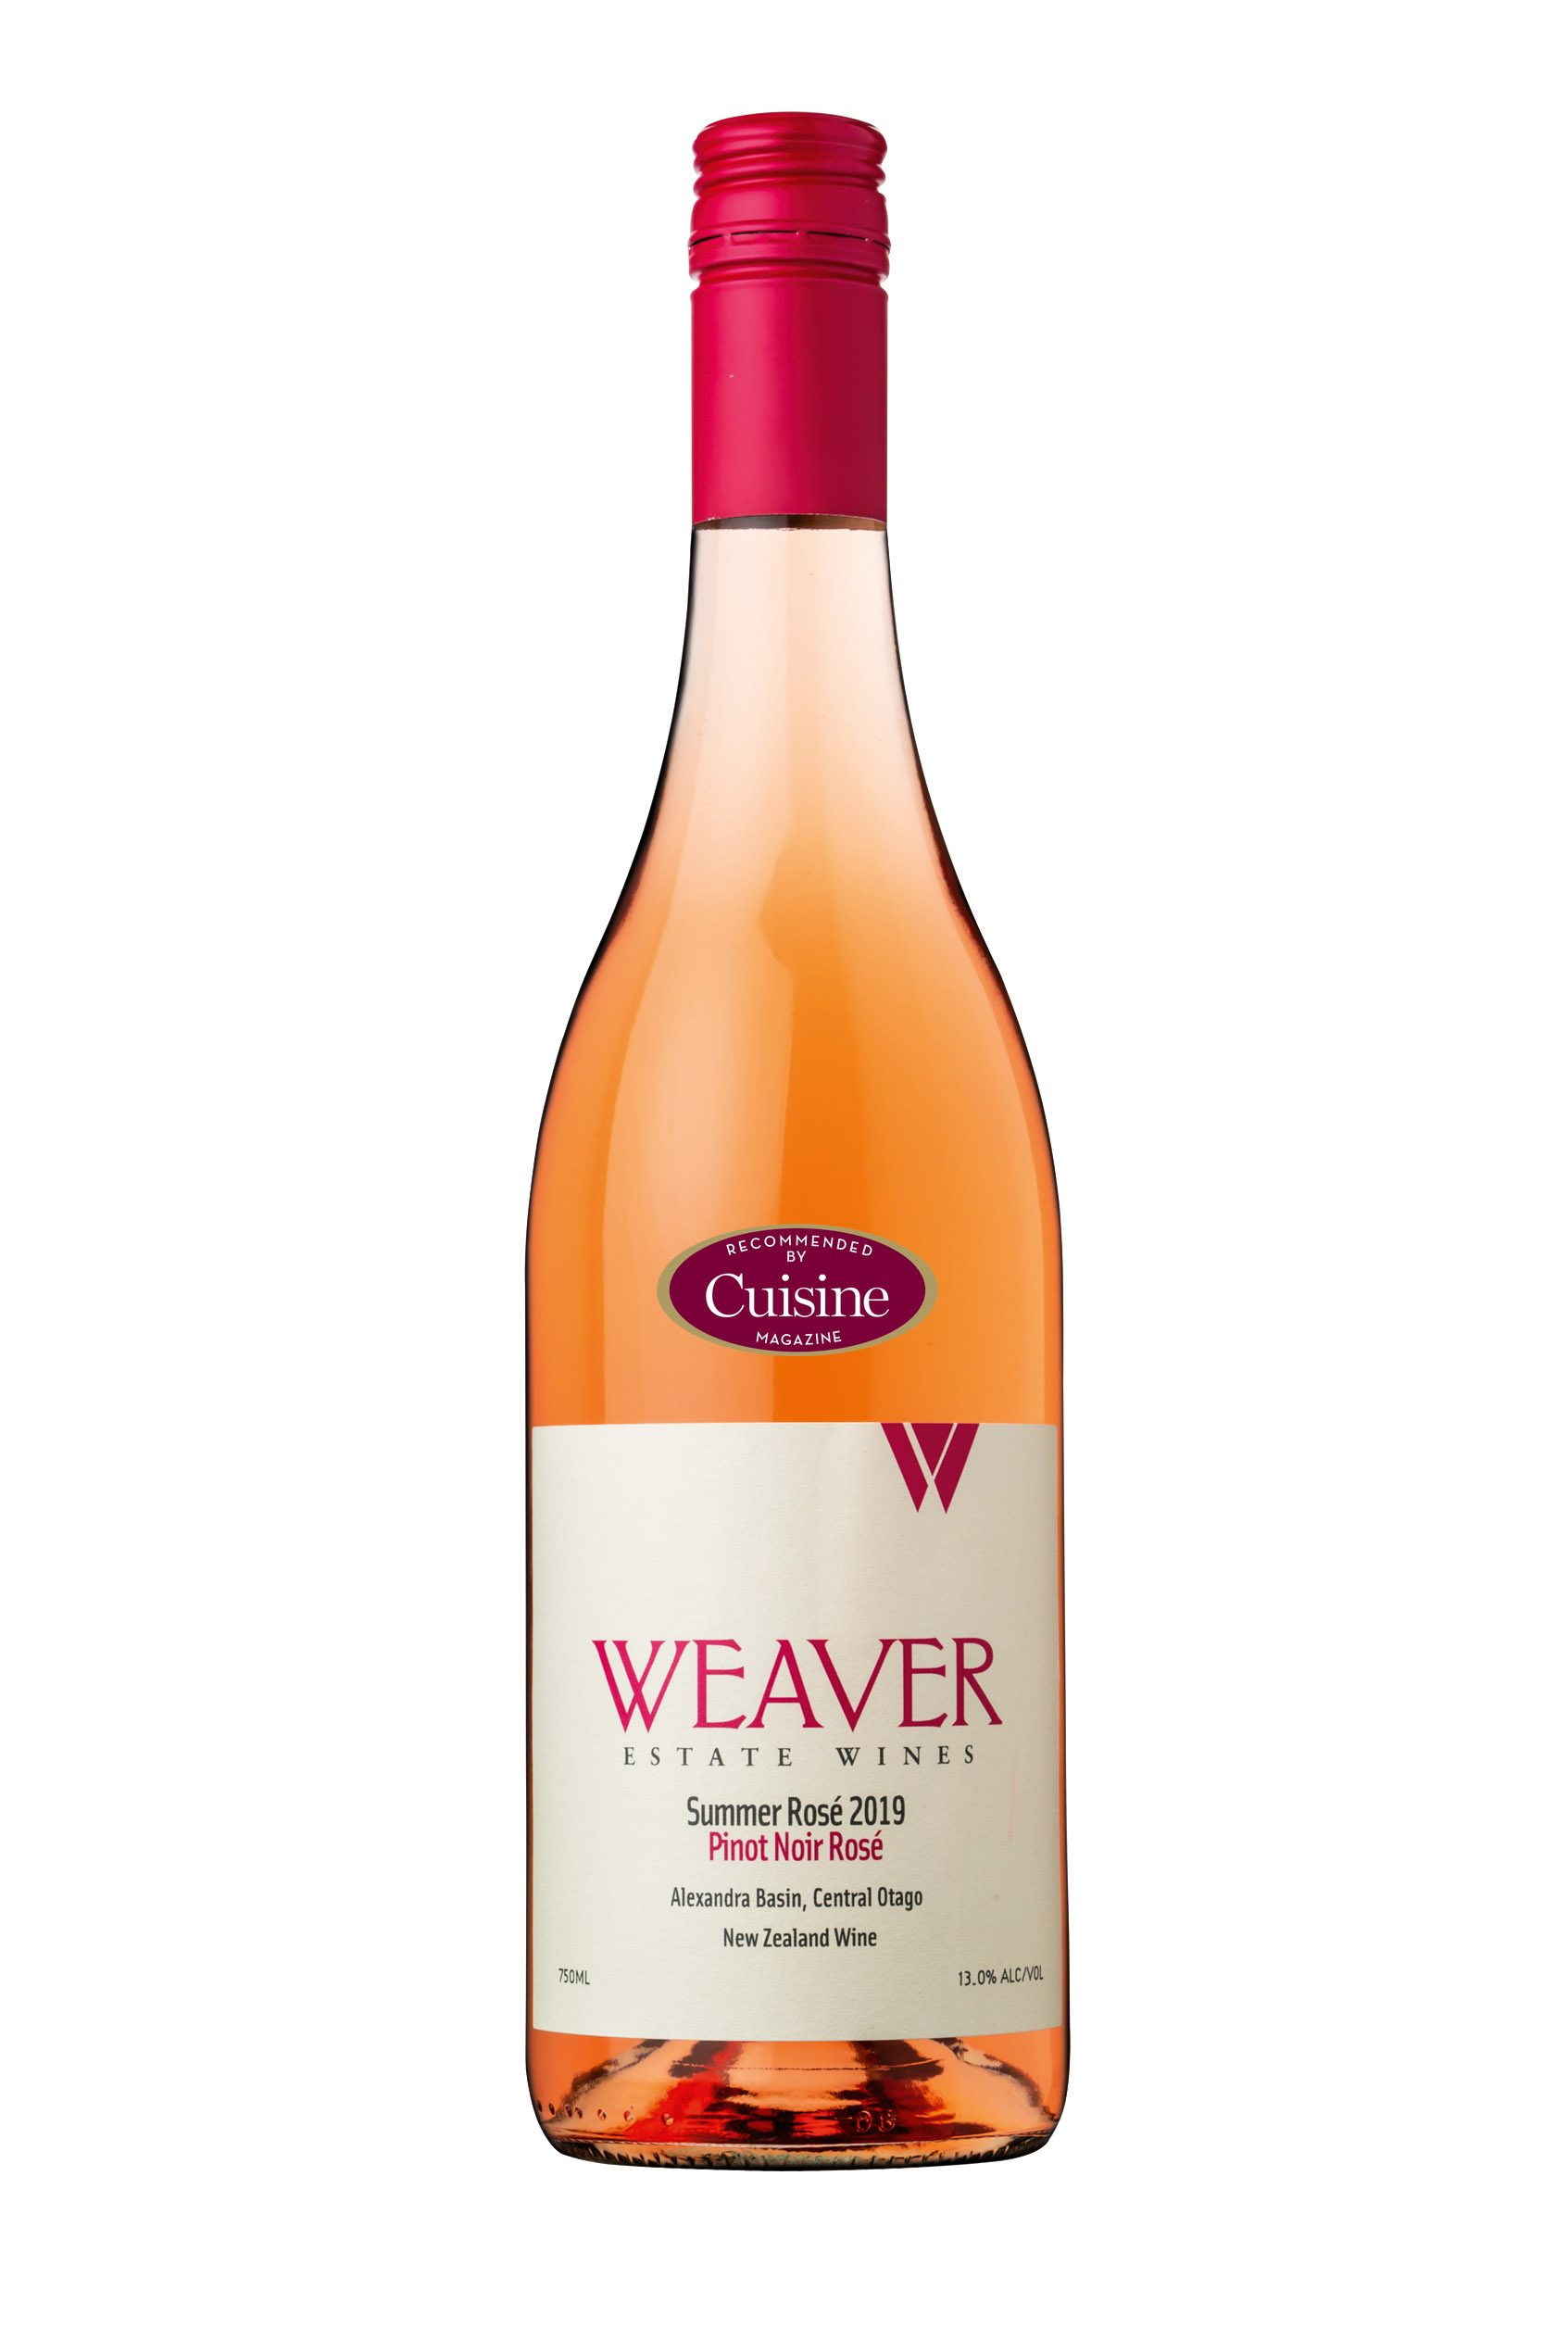 Weaver Estate Wines Summer Pinot Noir Rosé 2019 (Central Otago)